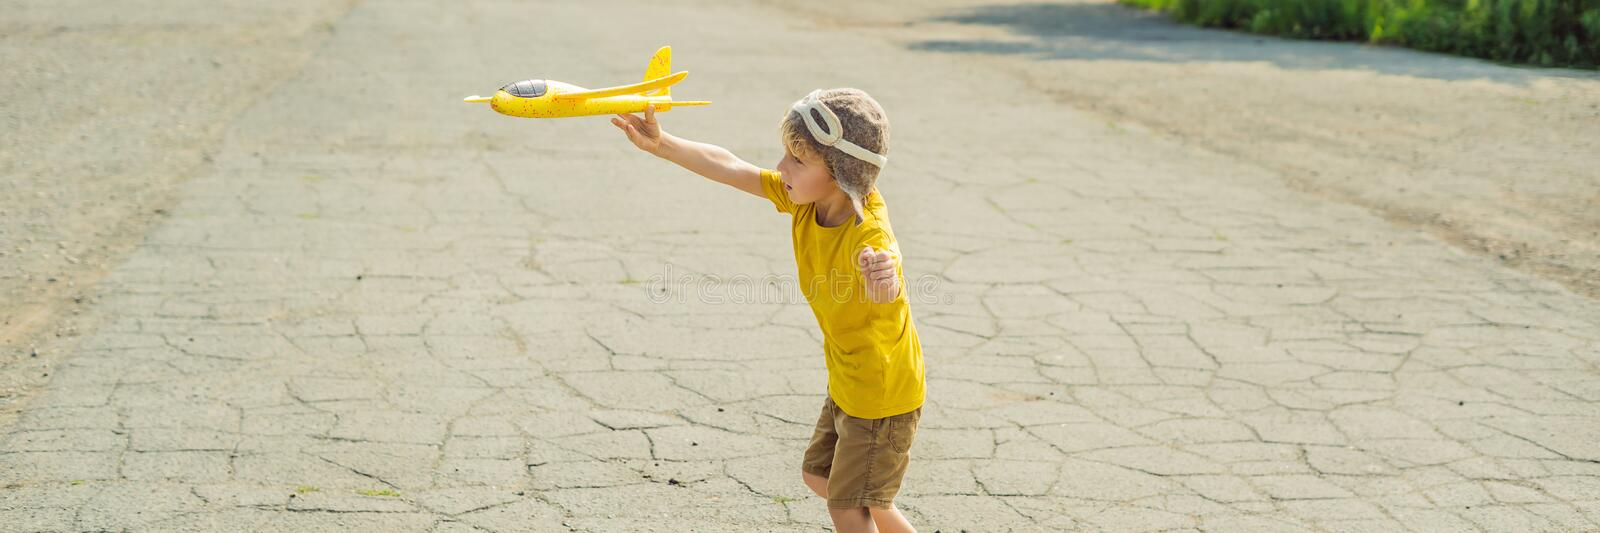 Happy kid playing with toy airplane against old runway background. Traveling with kids concept BANNER, LONG FORMAT. Happy kid playing with toy airplane against royalty free stock image